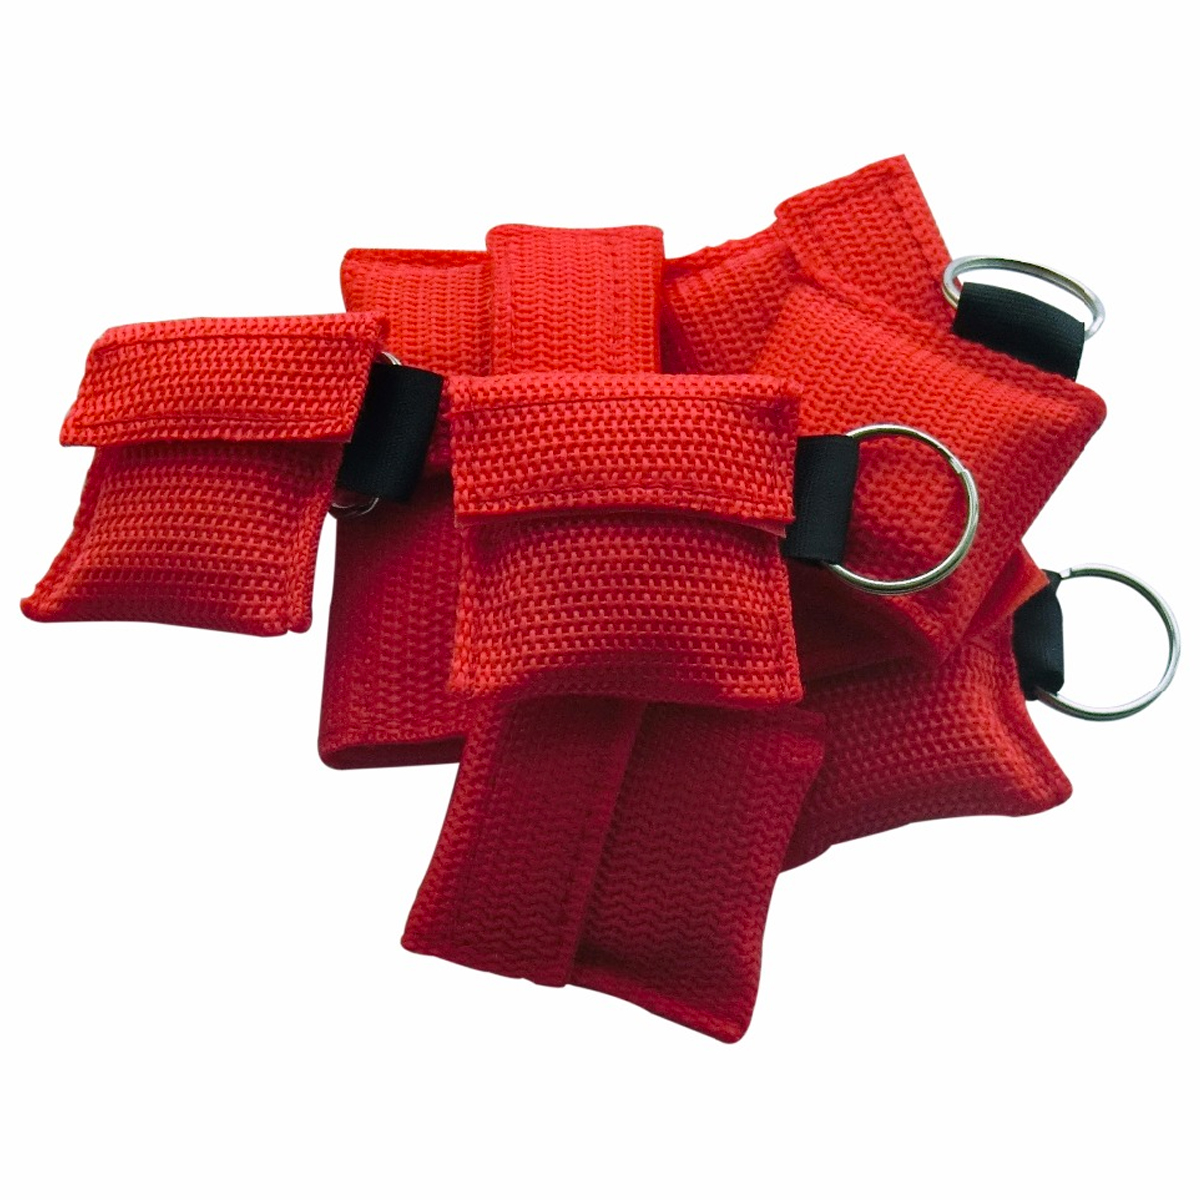 80Pcs/Pack CPR Resuscitator Masks Emergency CPR Face Shield First Aid Rescue Training Health Care Tool With A Red Pouch bix cpr100a electronic half body cpr and first aid training dummy w056